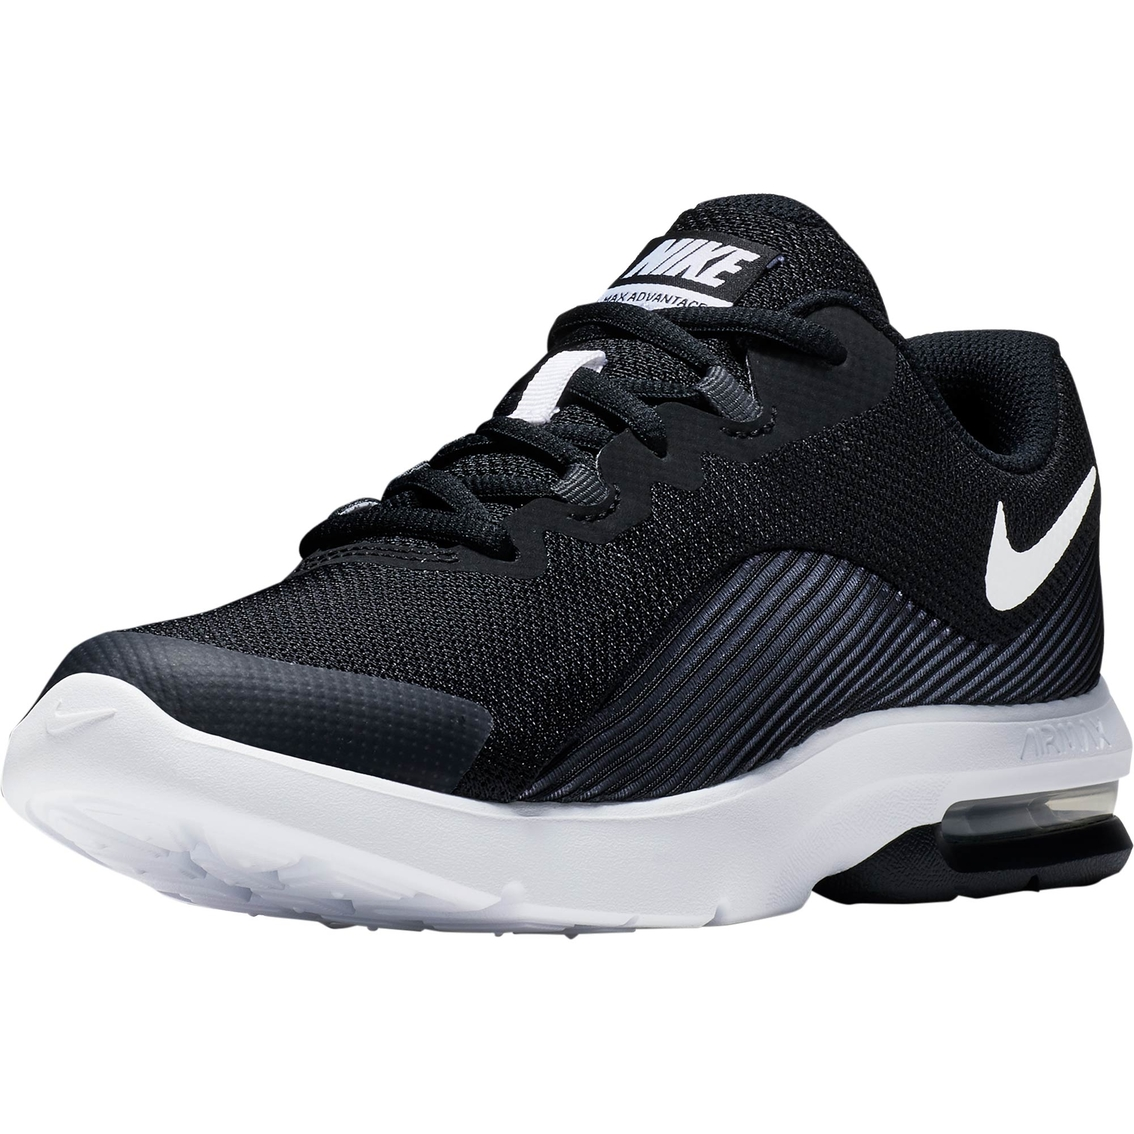 29b354b5d6208d Nike Grade School Boys Air Max Advantage 2 Running Shoes ...